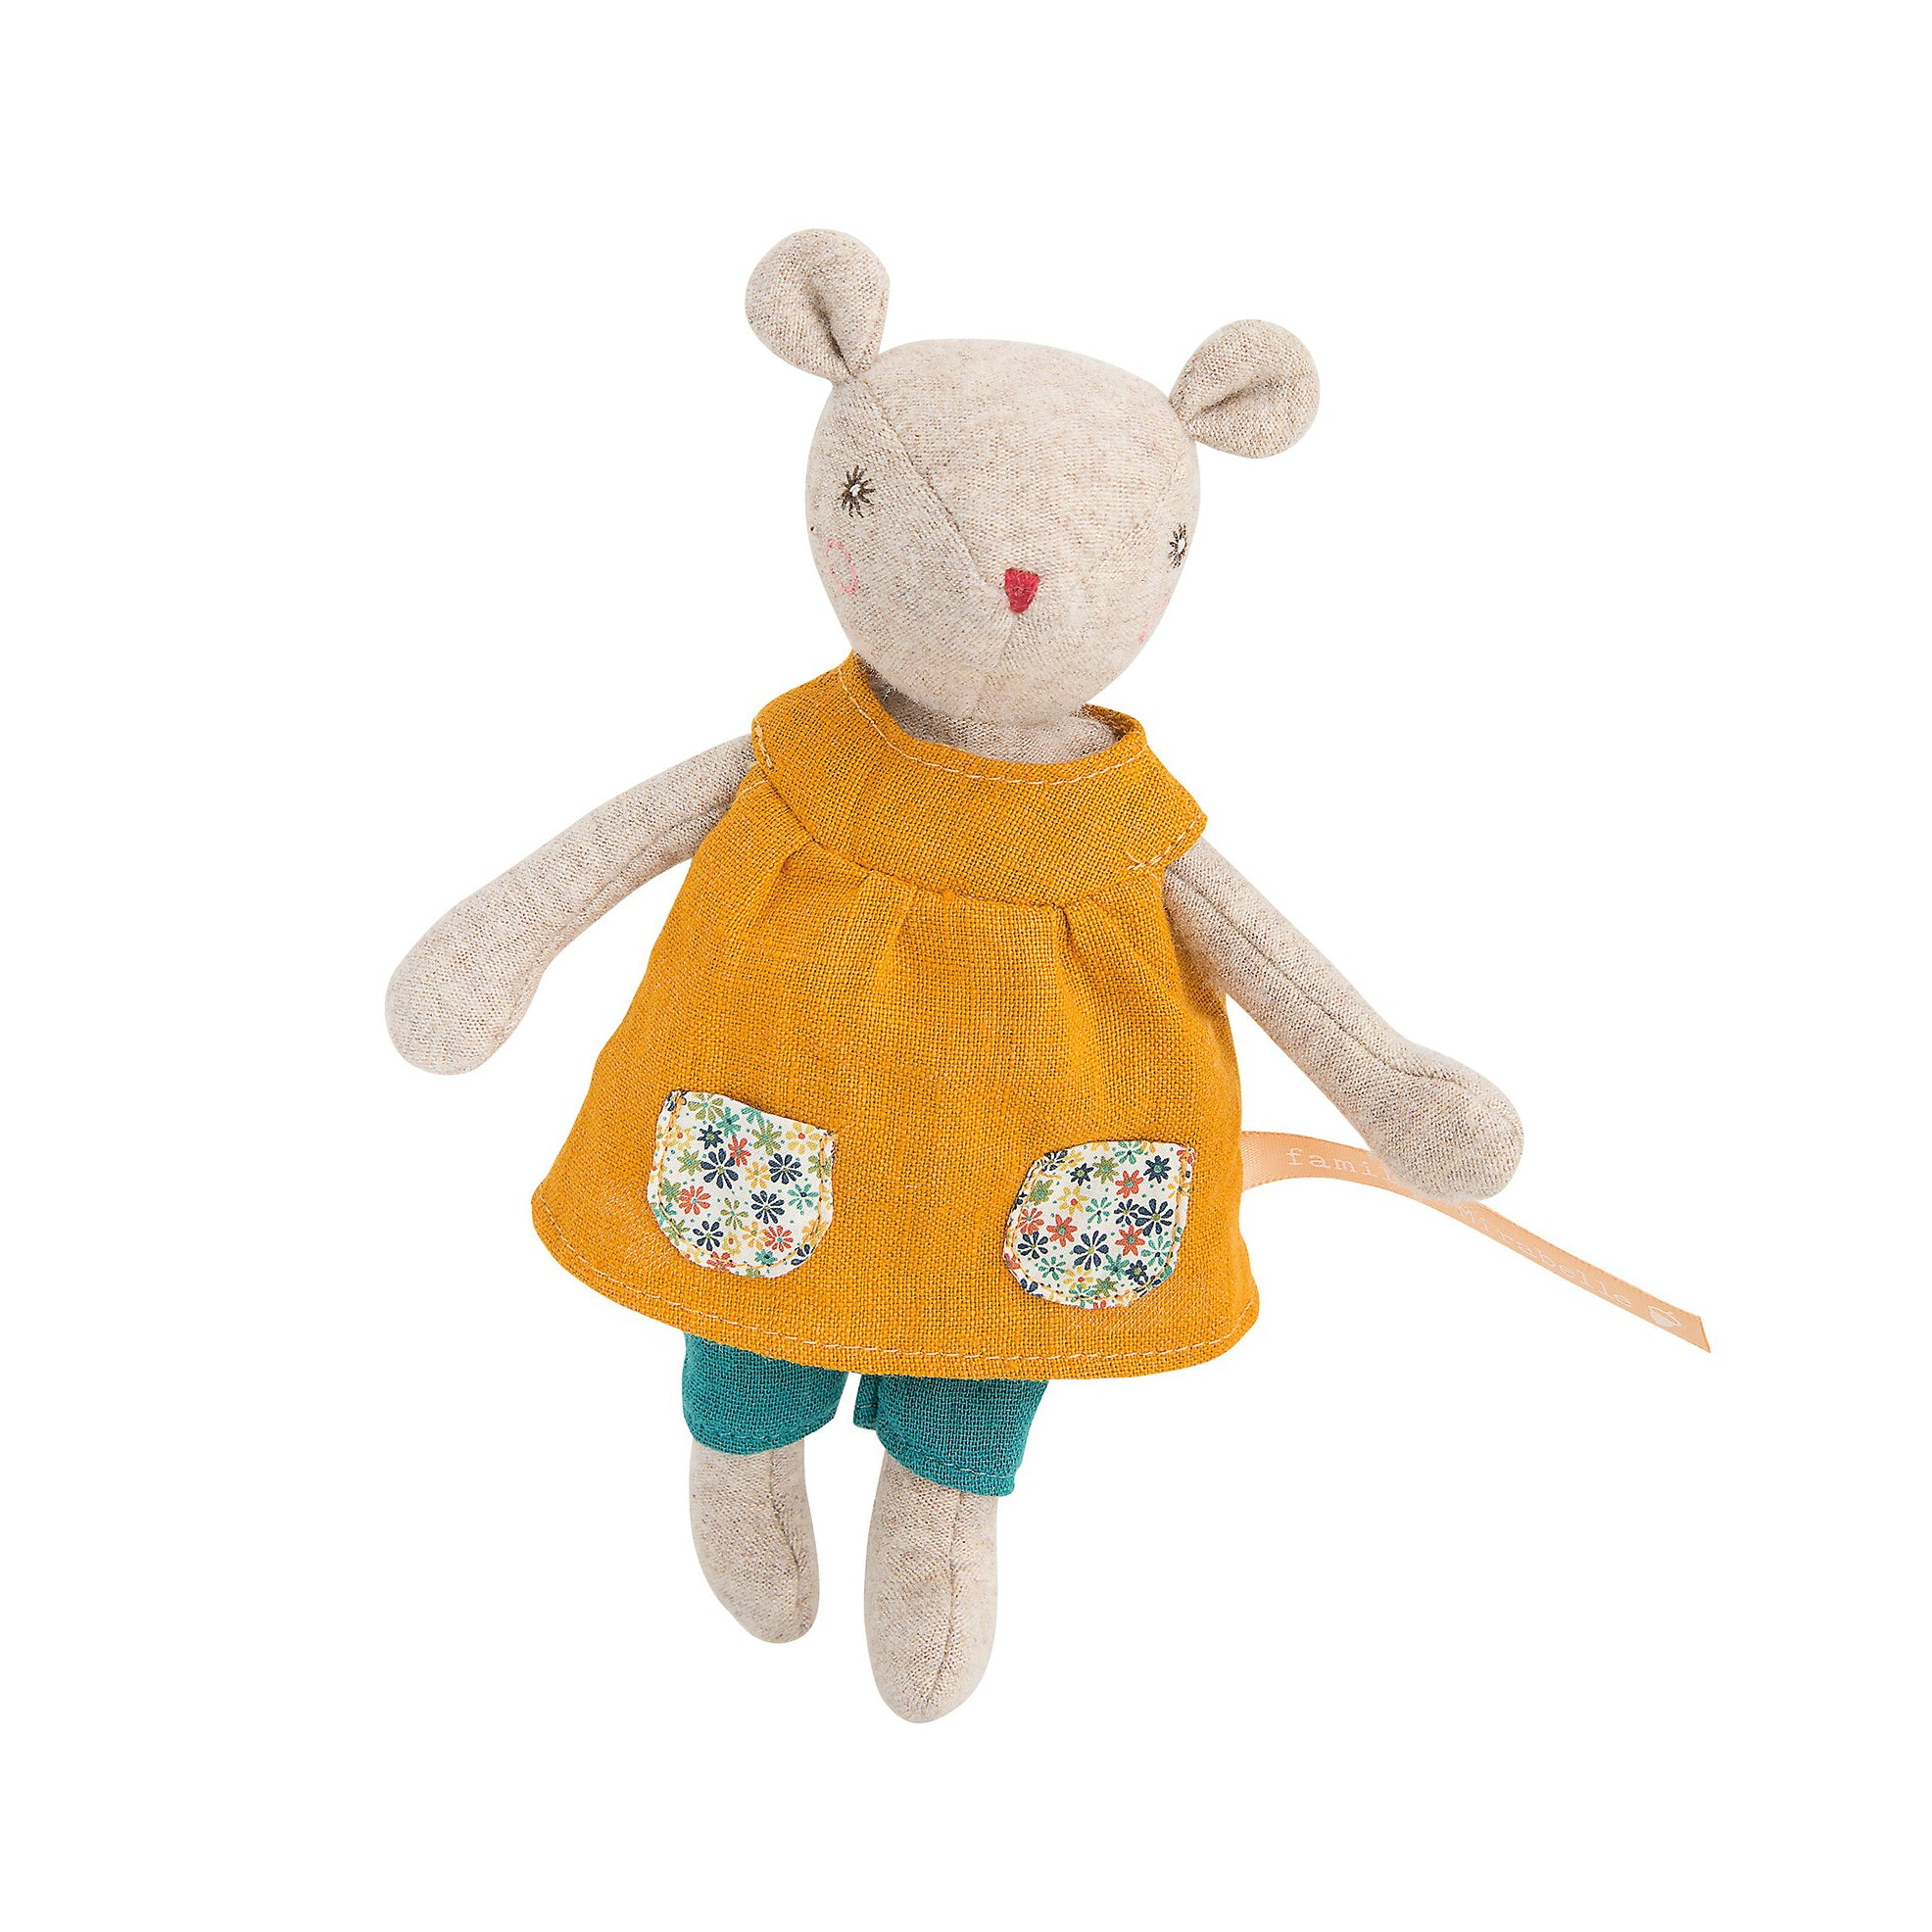 Groseille the Tiny Mouse by Moulin Roty